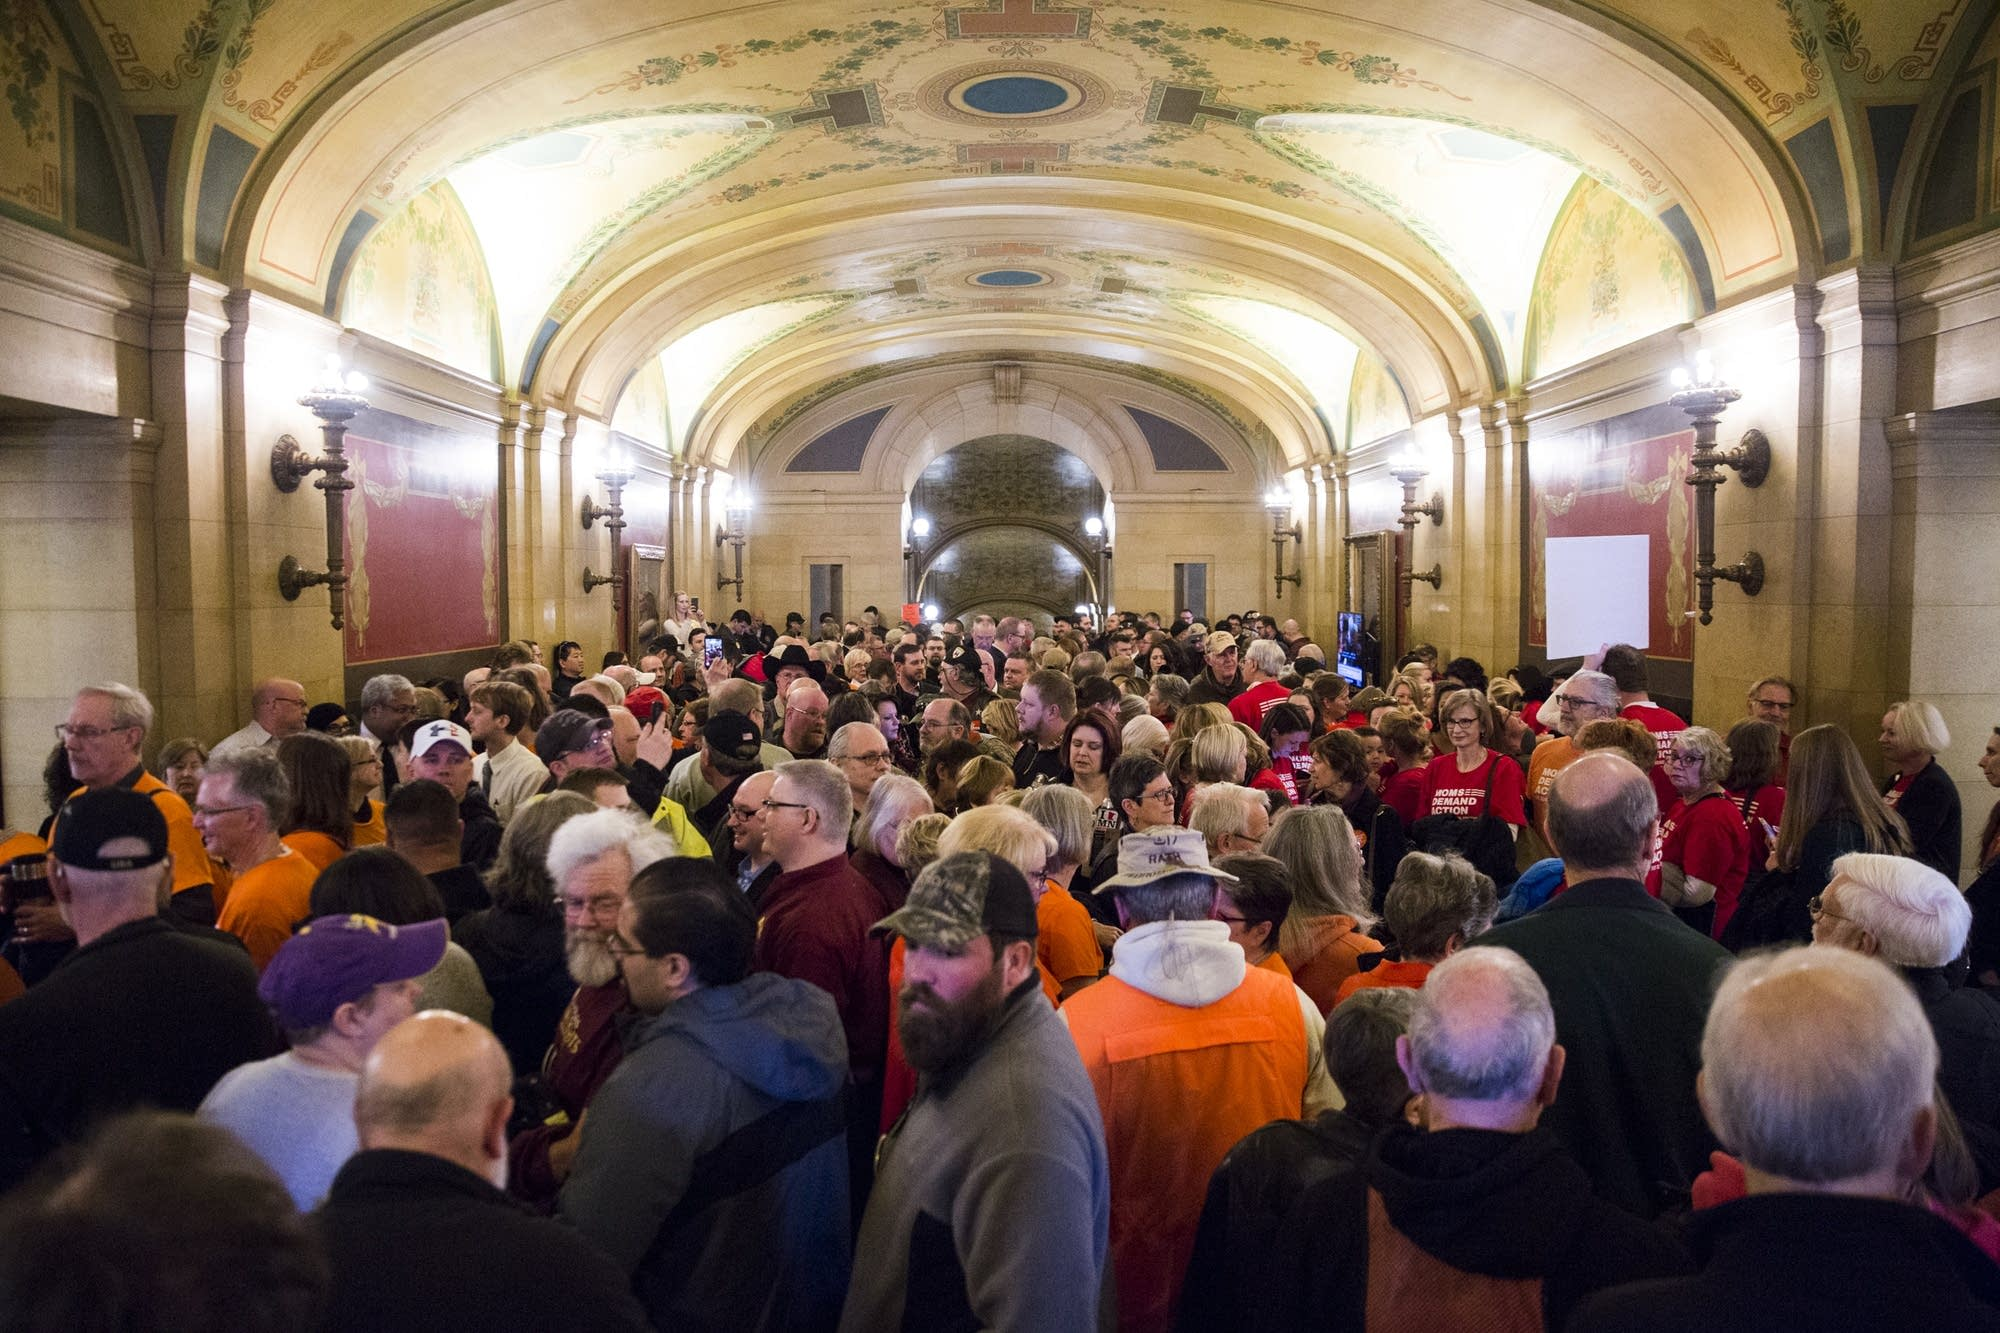 Constituent fills the halls of the Minnesota State Capitol